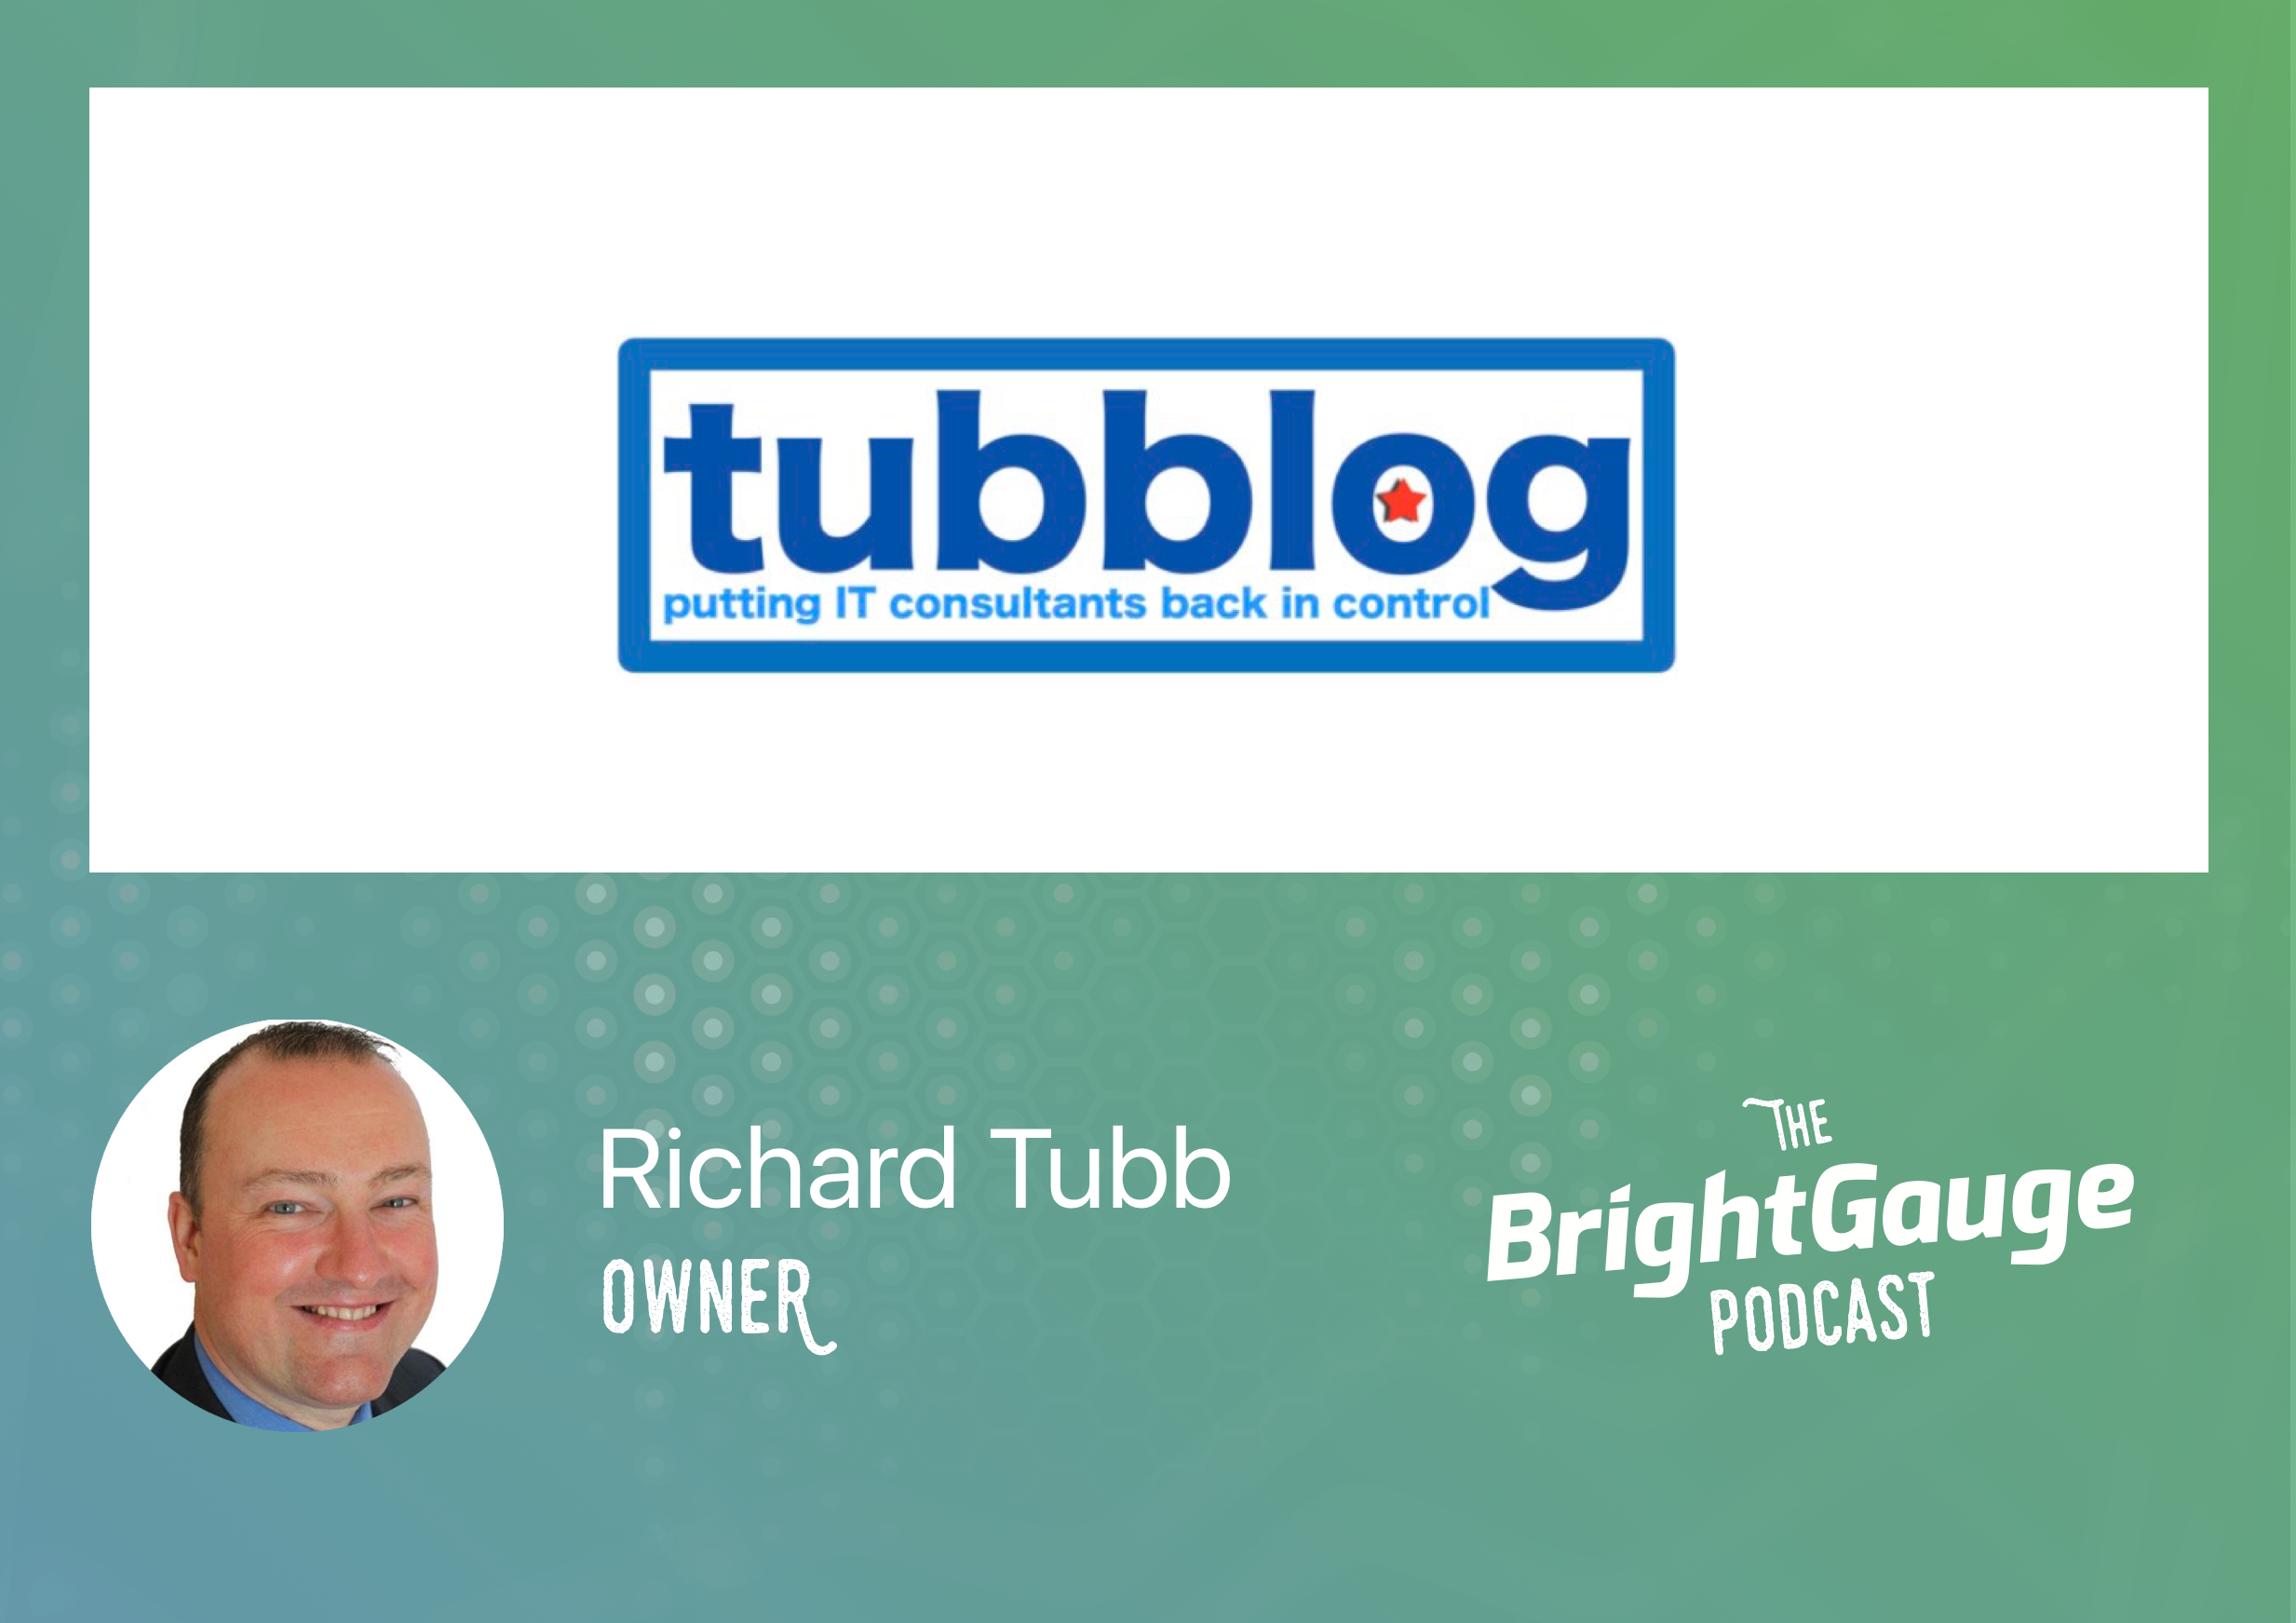 [Podcast] Episode 7 with Richard Tubb of Tubblog